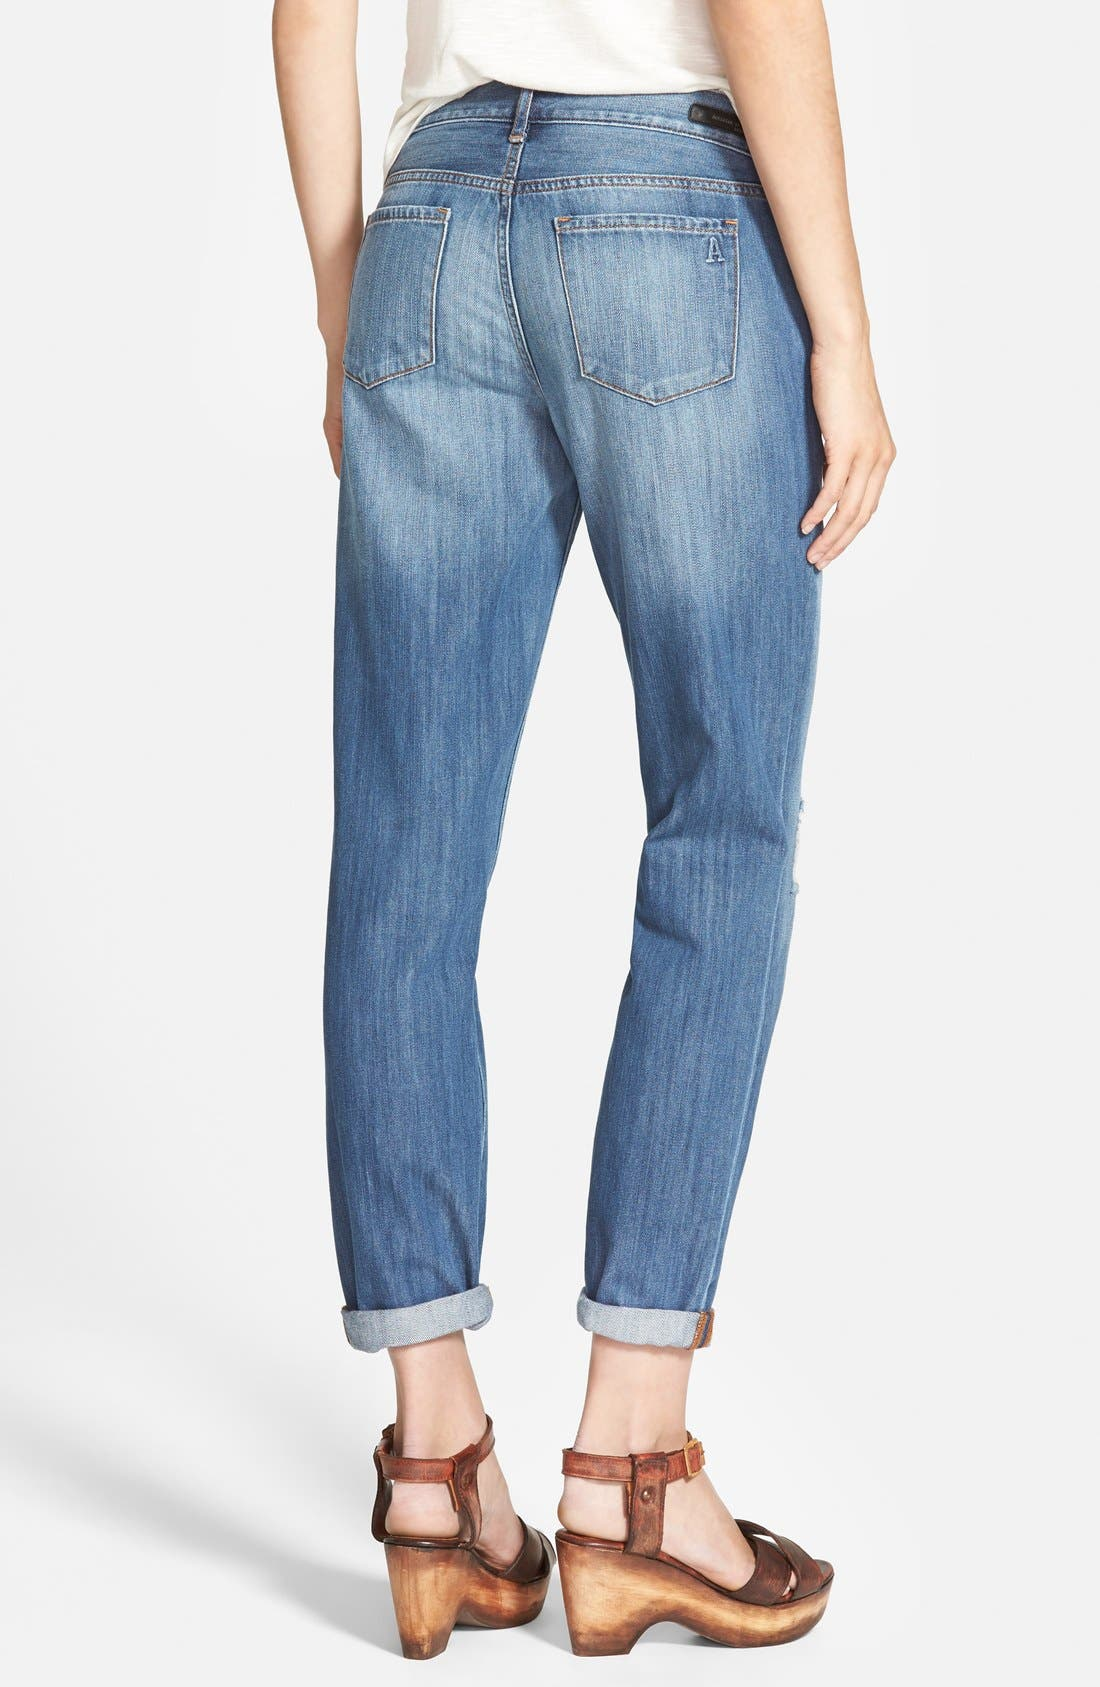 Alternate Image 2  - Articles of Society 'Cindy' Boyfriend Jeans (Medium Wash)